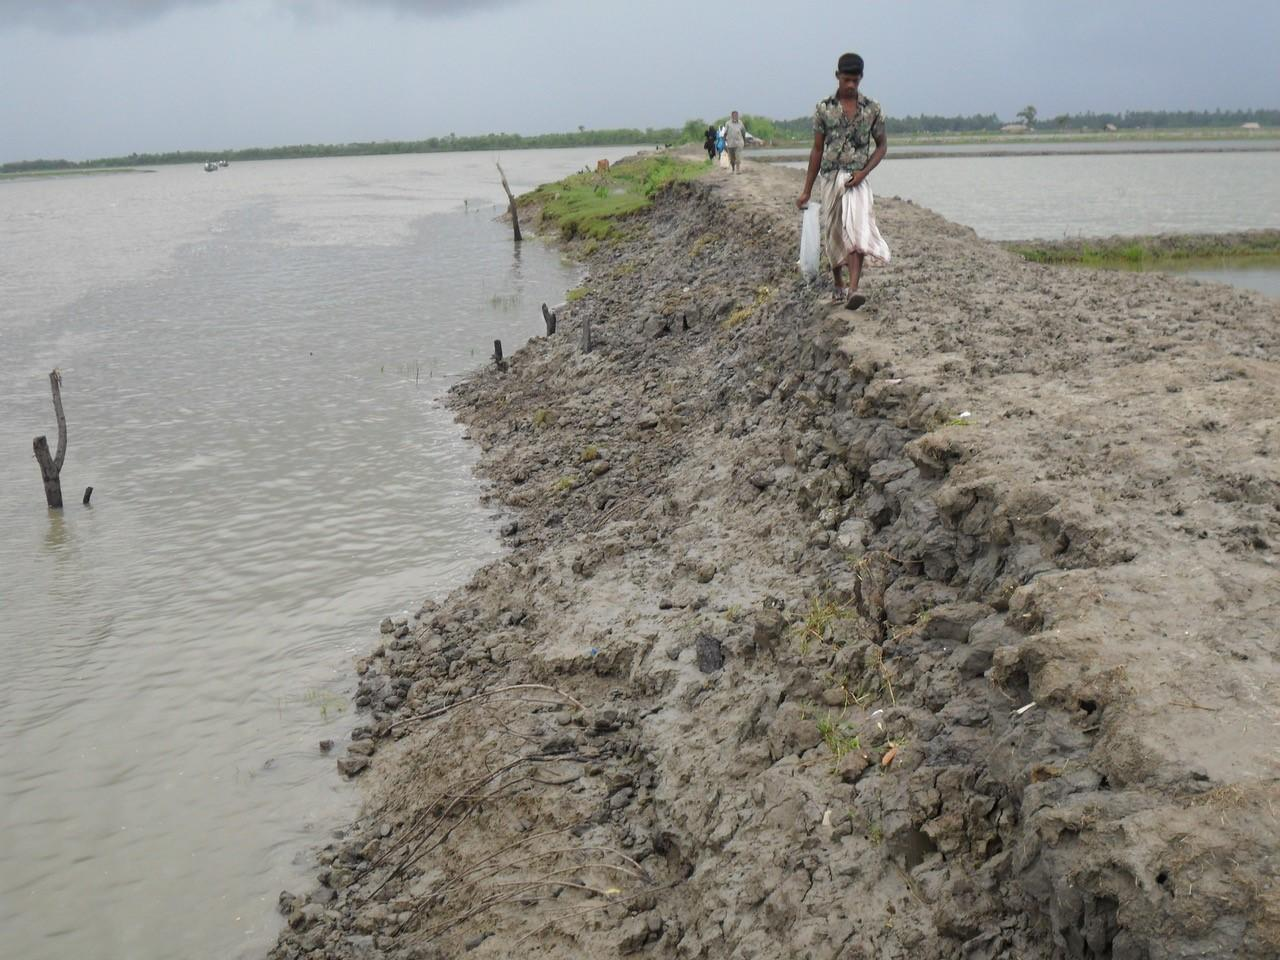 The choppy remains of an eroded embankment wall along a river in Bangladesh.